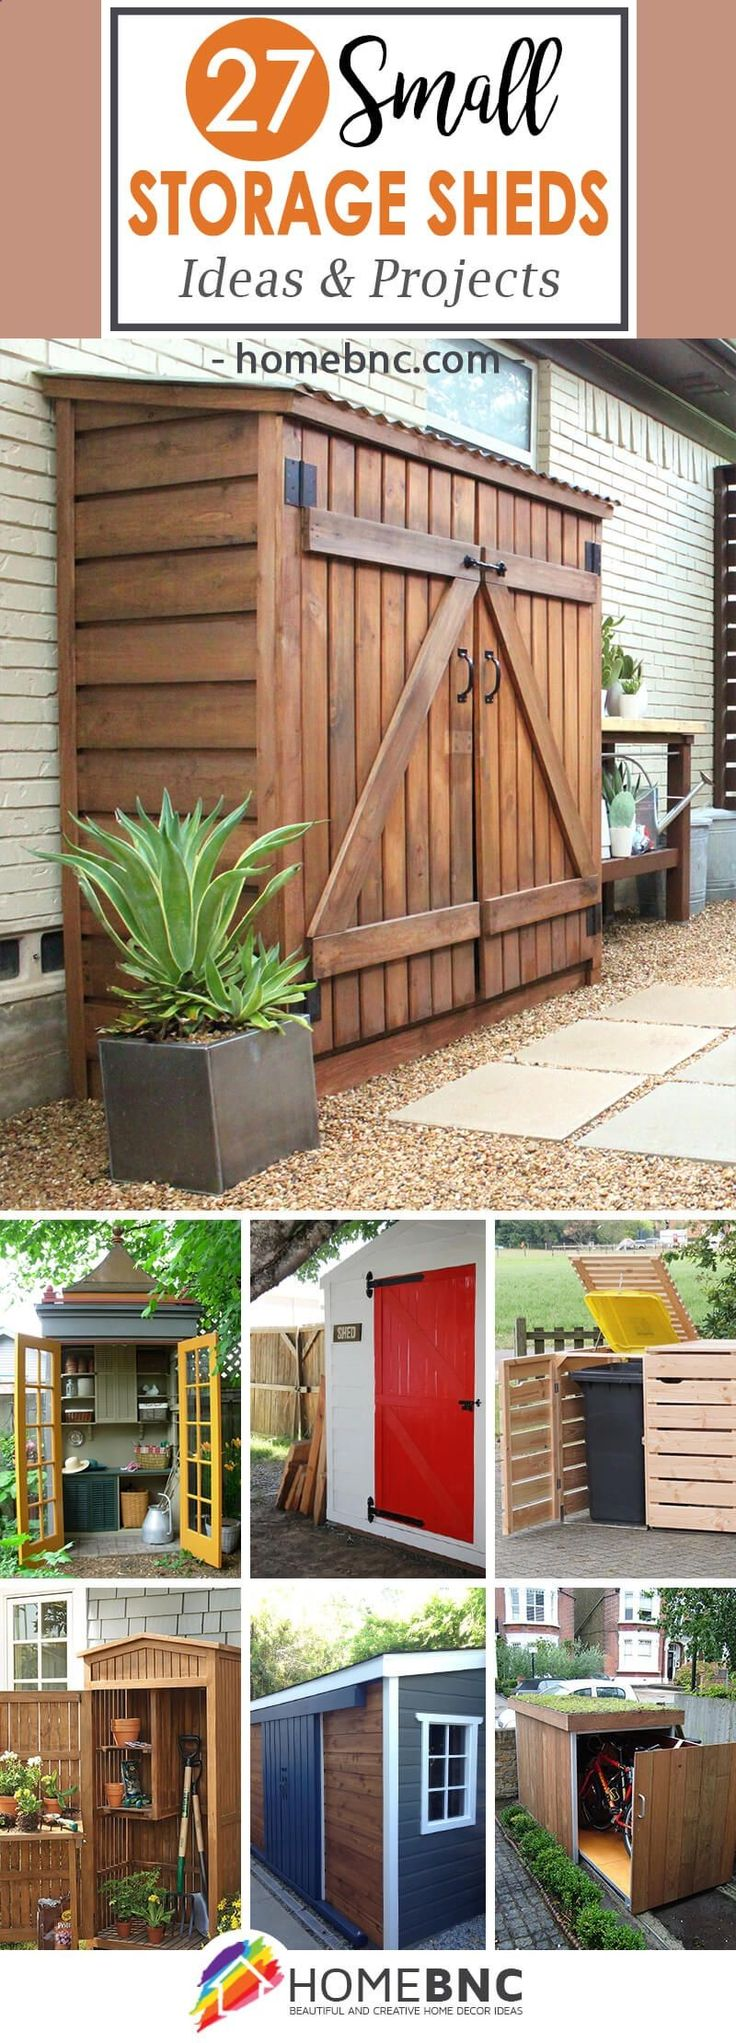 49 best cabañas images on Pinterest | House design, Small houses and ...